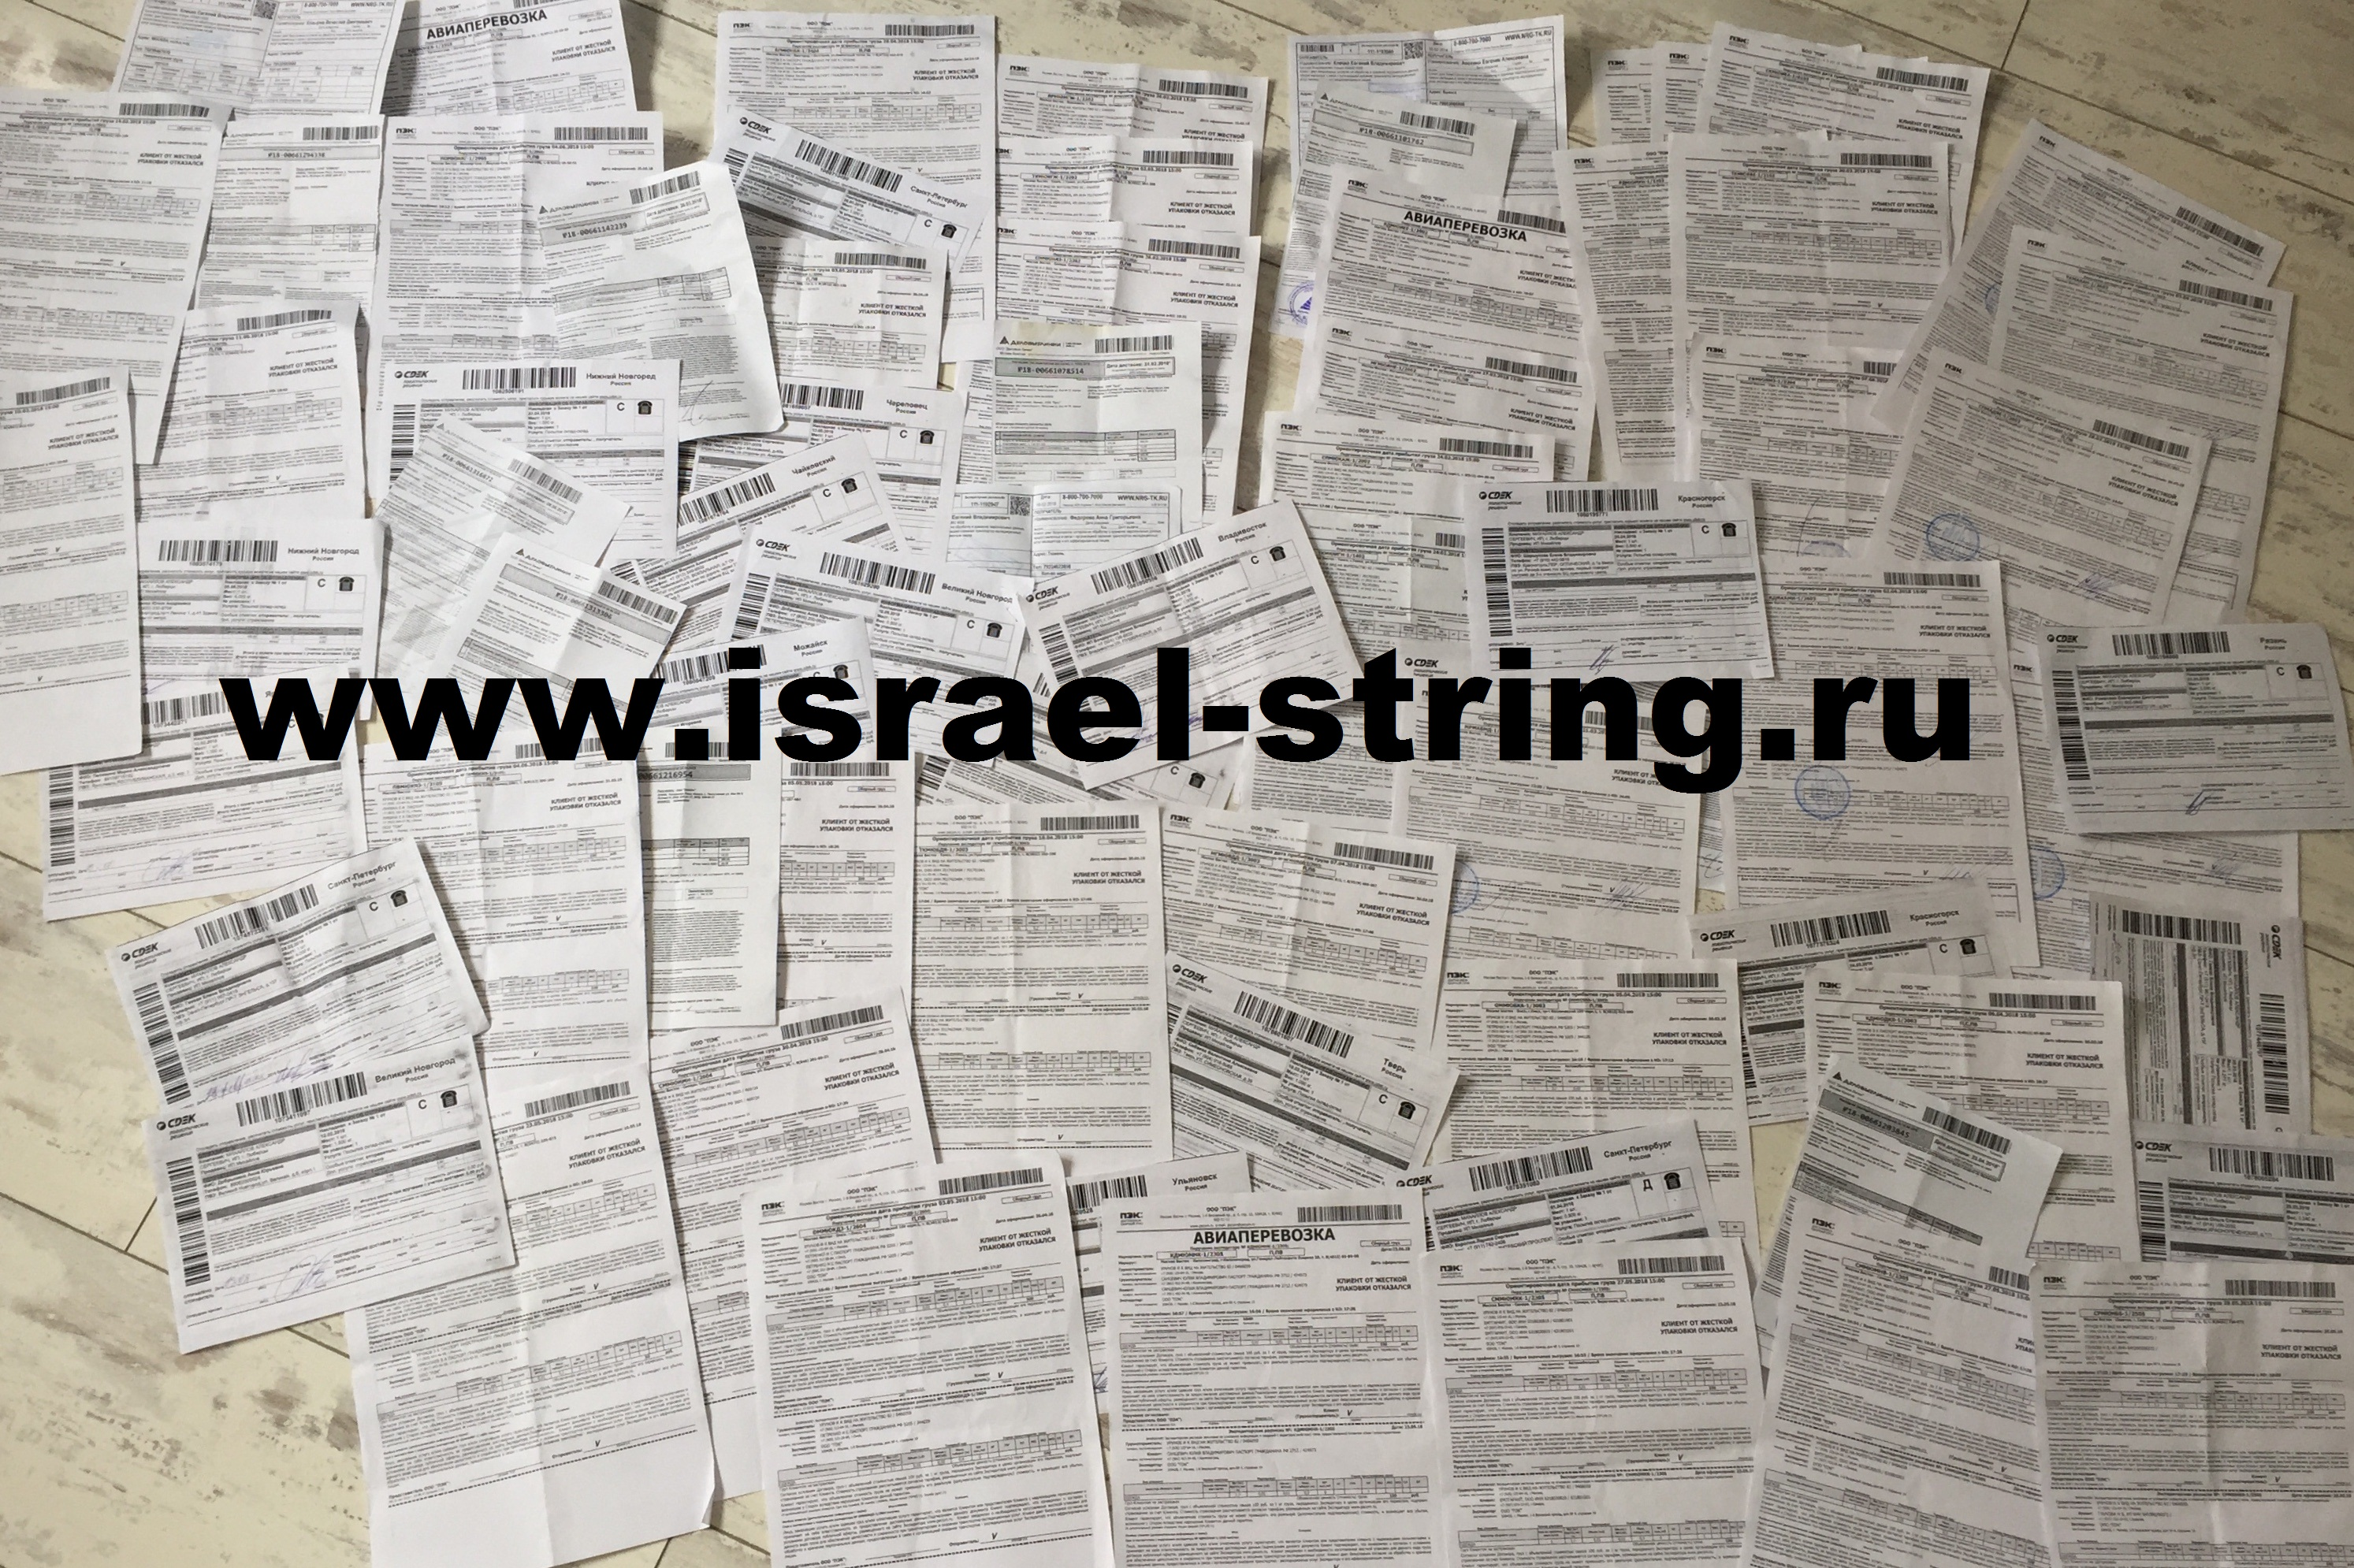 http://israel-string.ru/images/upload/FullSizeRender_11.jpg